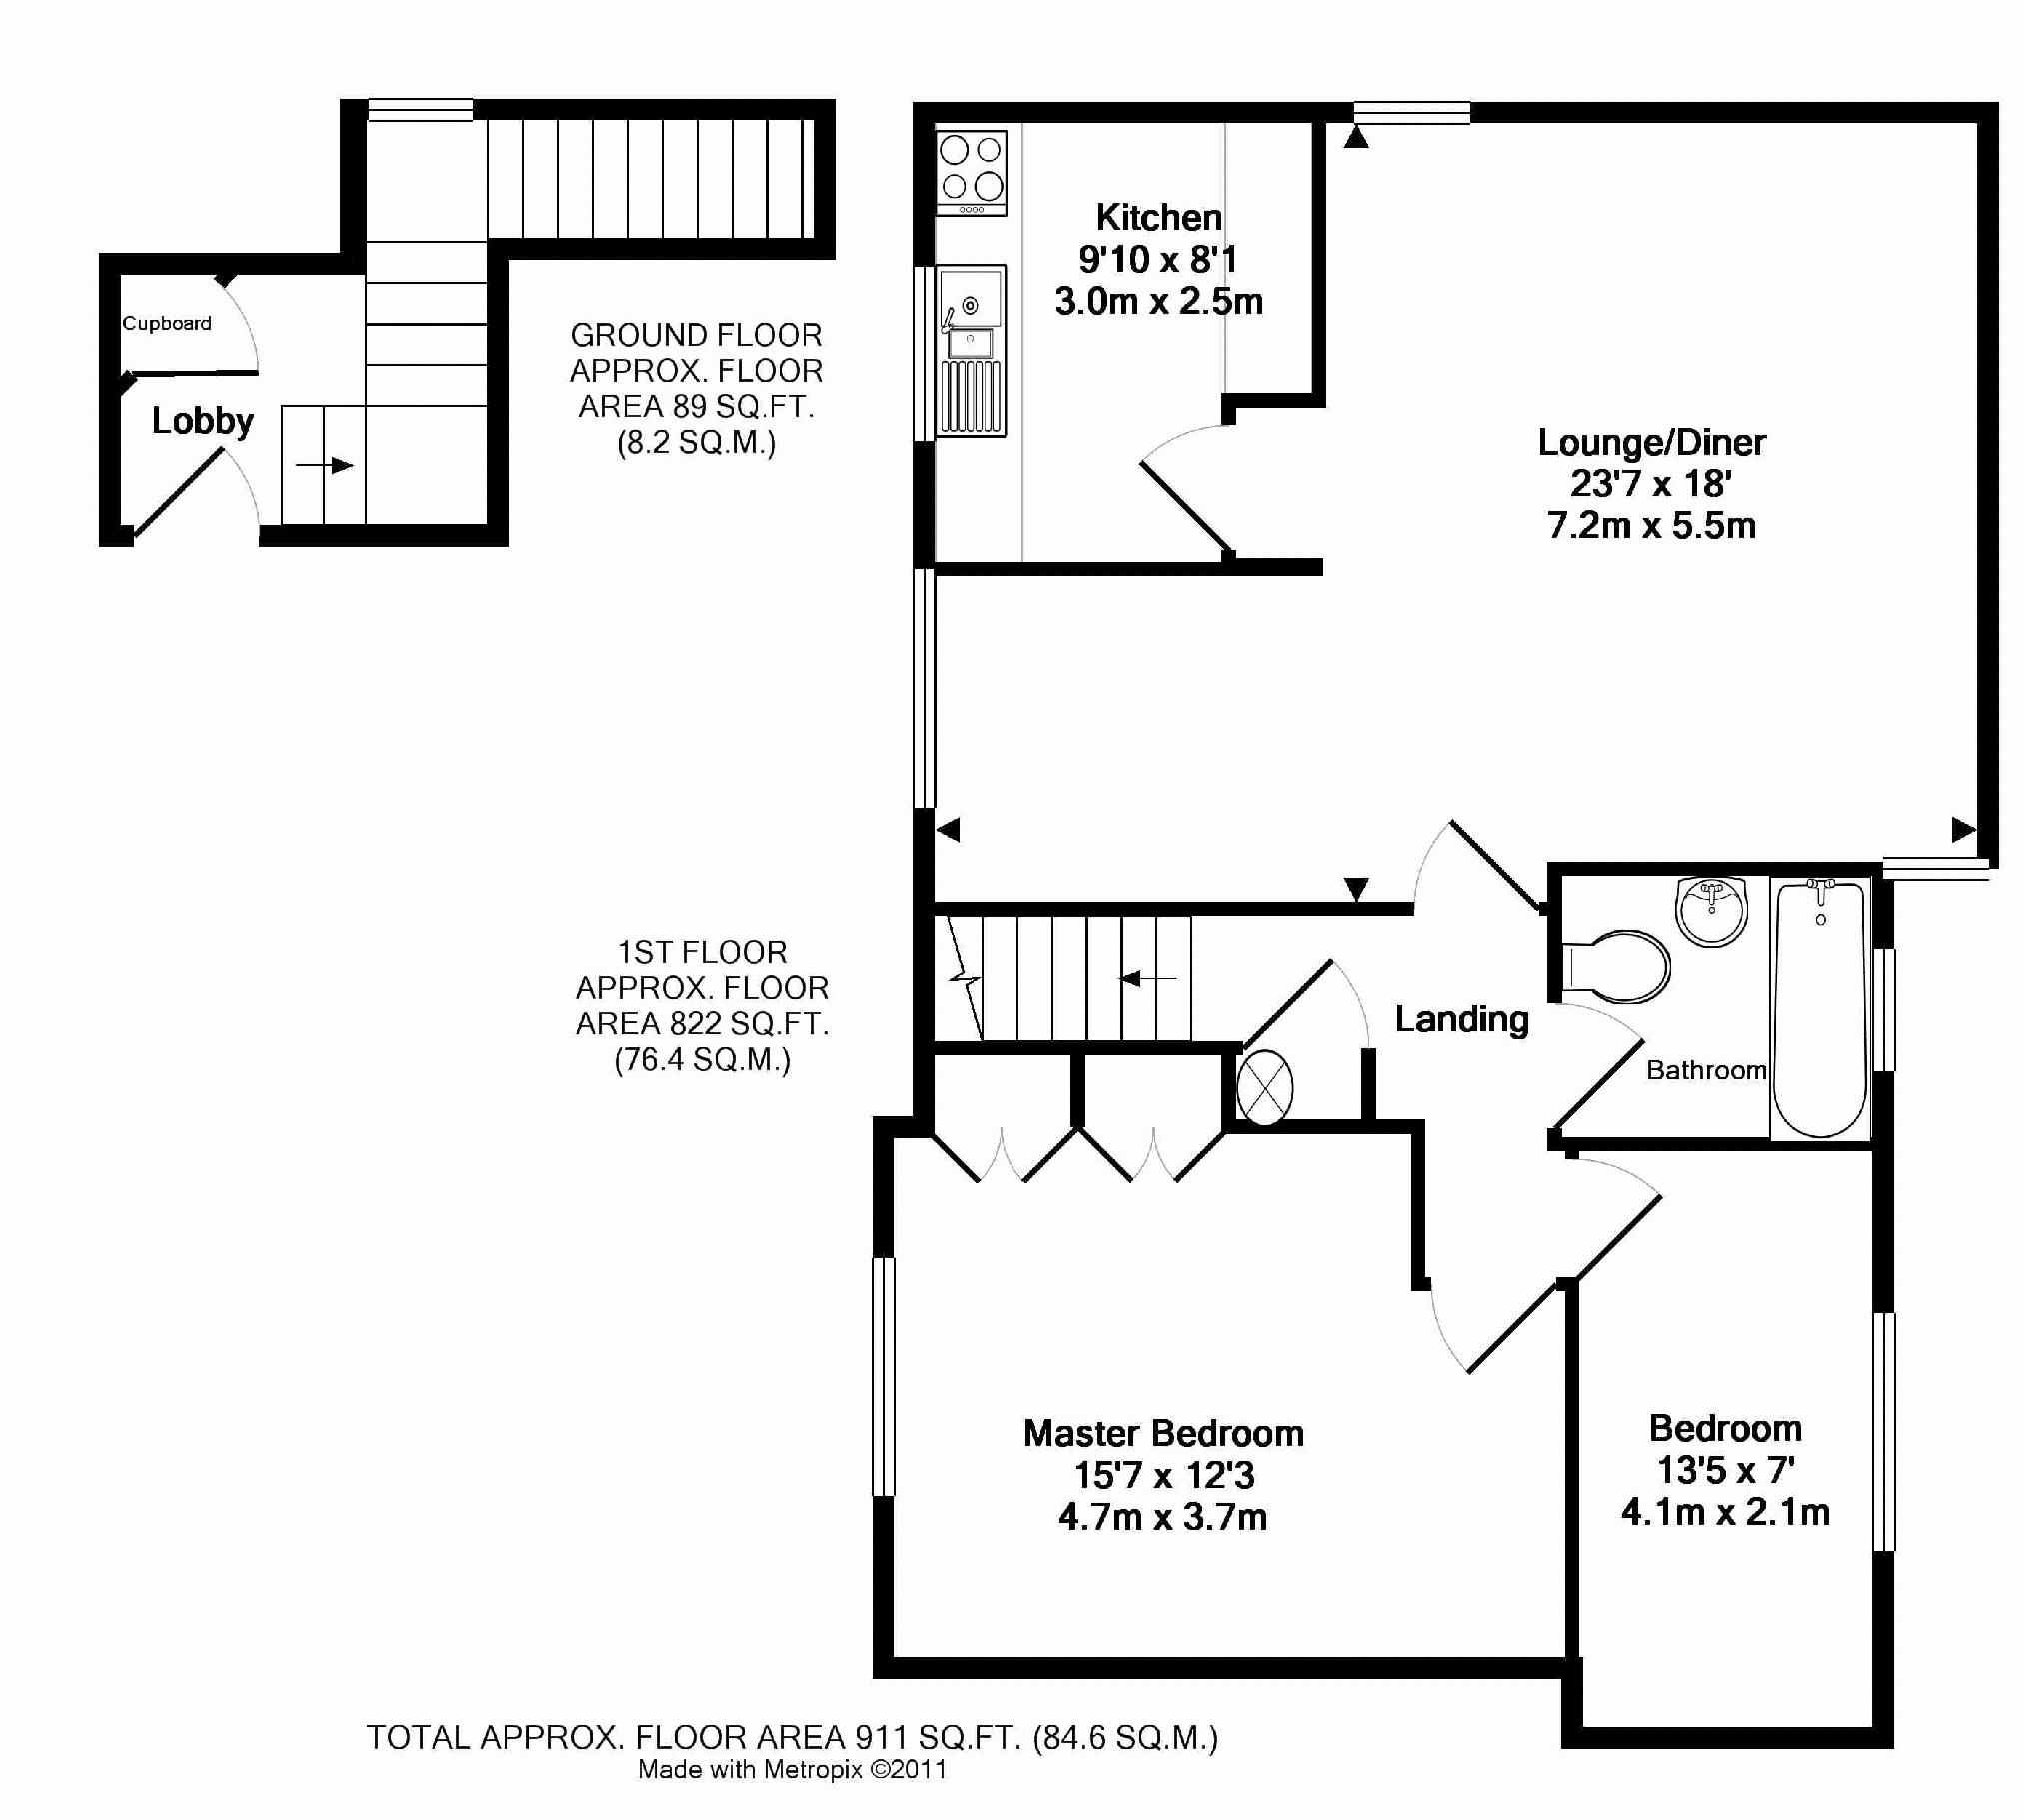 Property details for Flat 11 Holwell Court Holwell